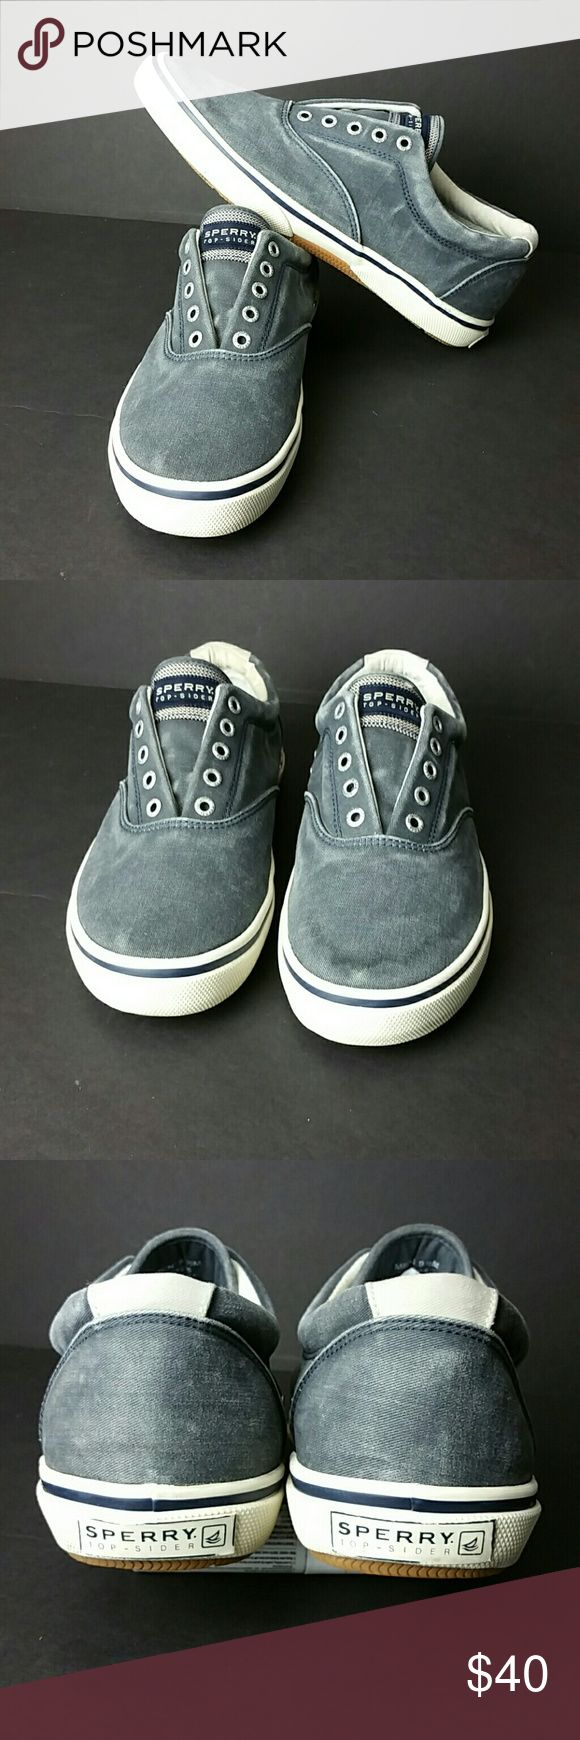 SPERRY TOP-SIDER MEN'S SHOES IN GOOD CONDITION   SKE # PA Sperry Top-Sider Shoes Sneakers